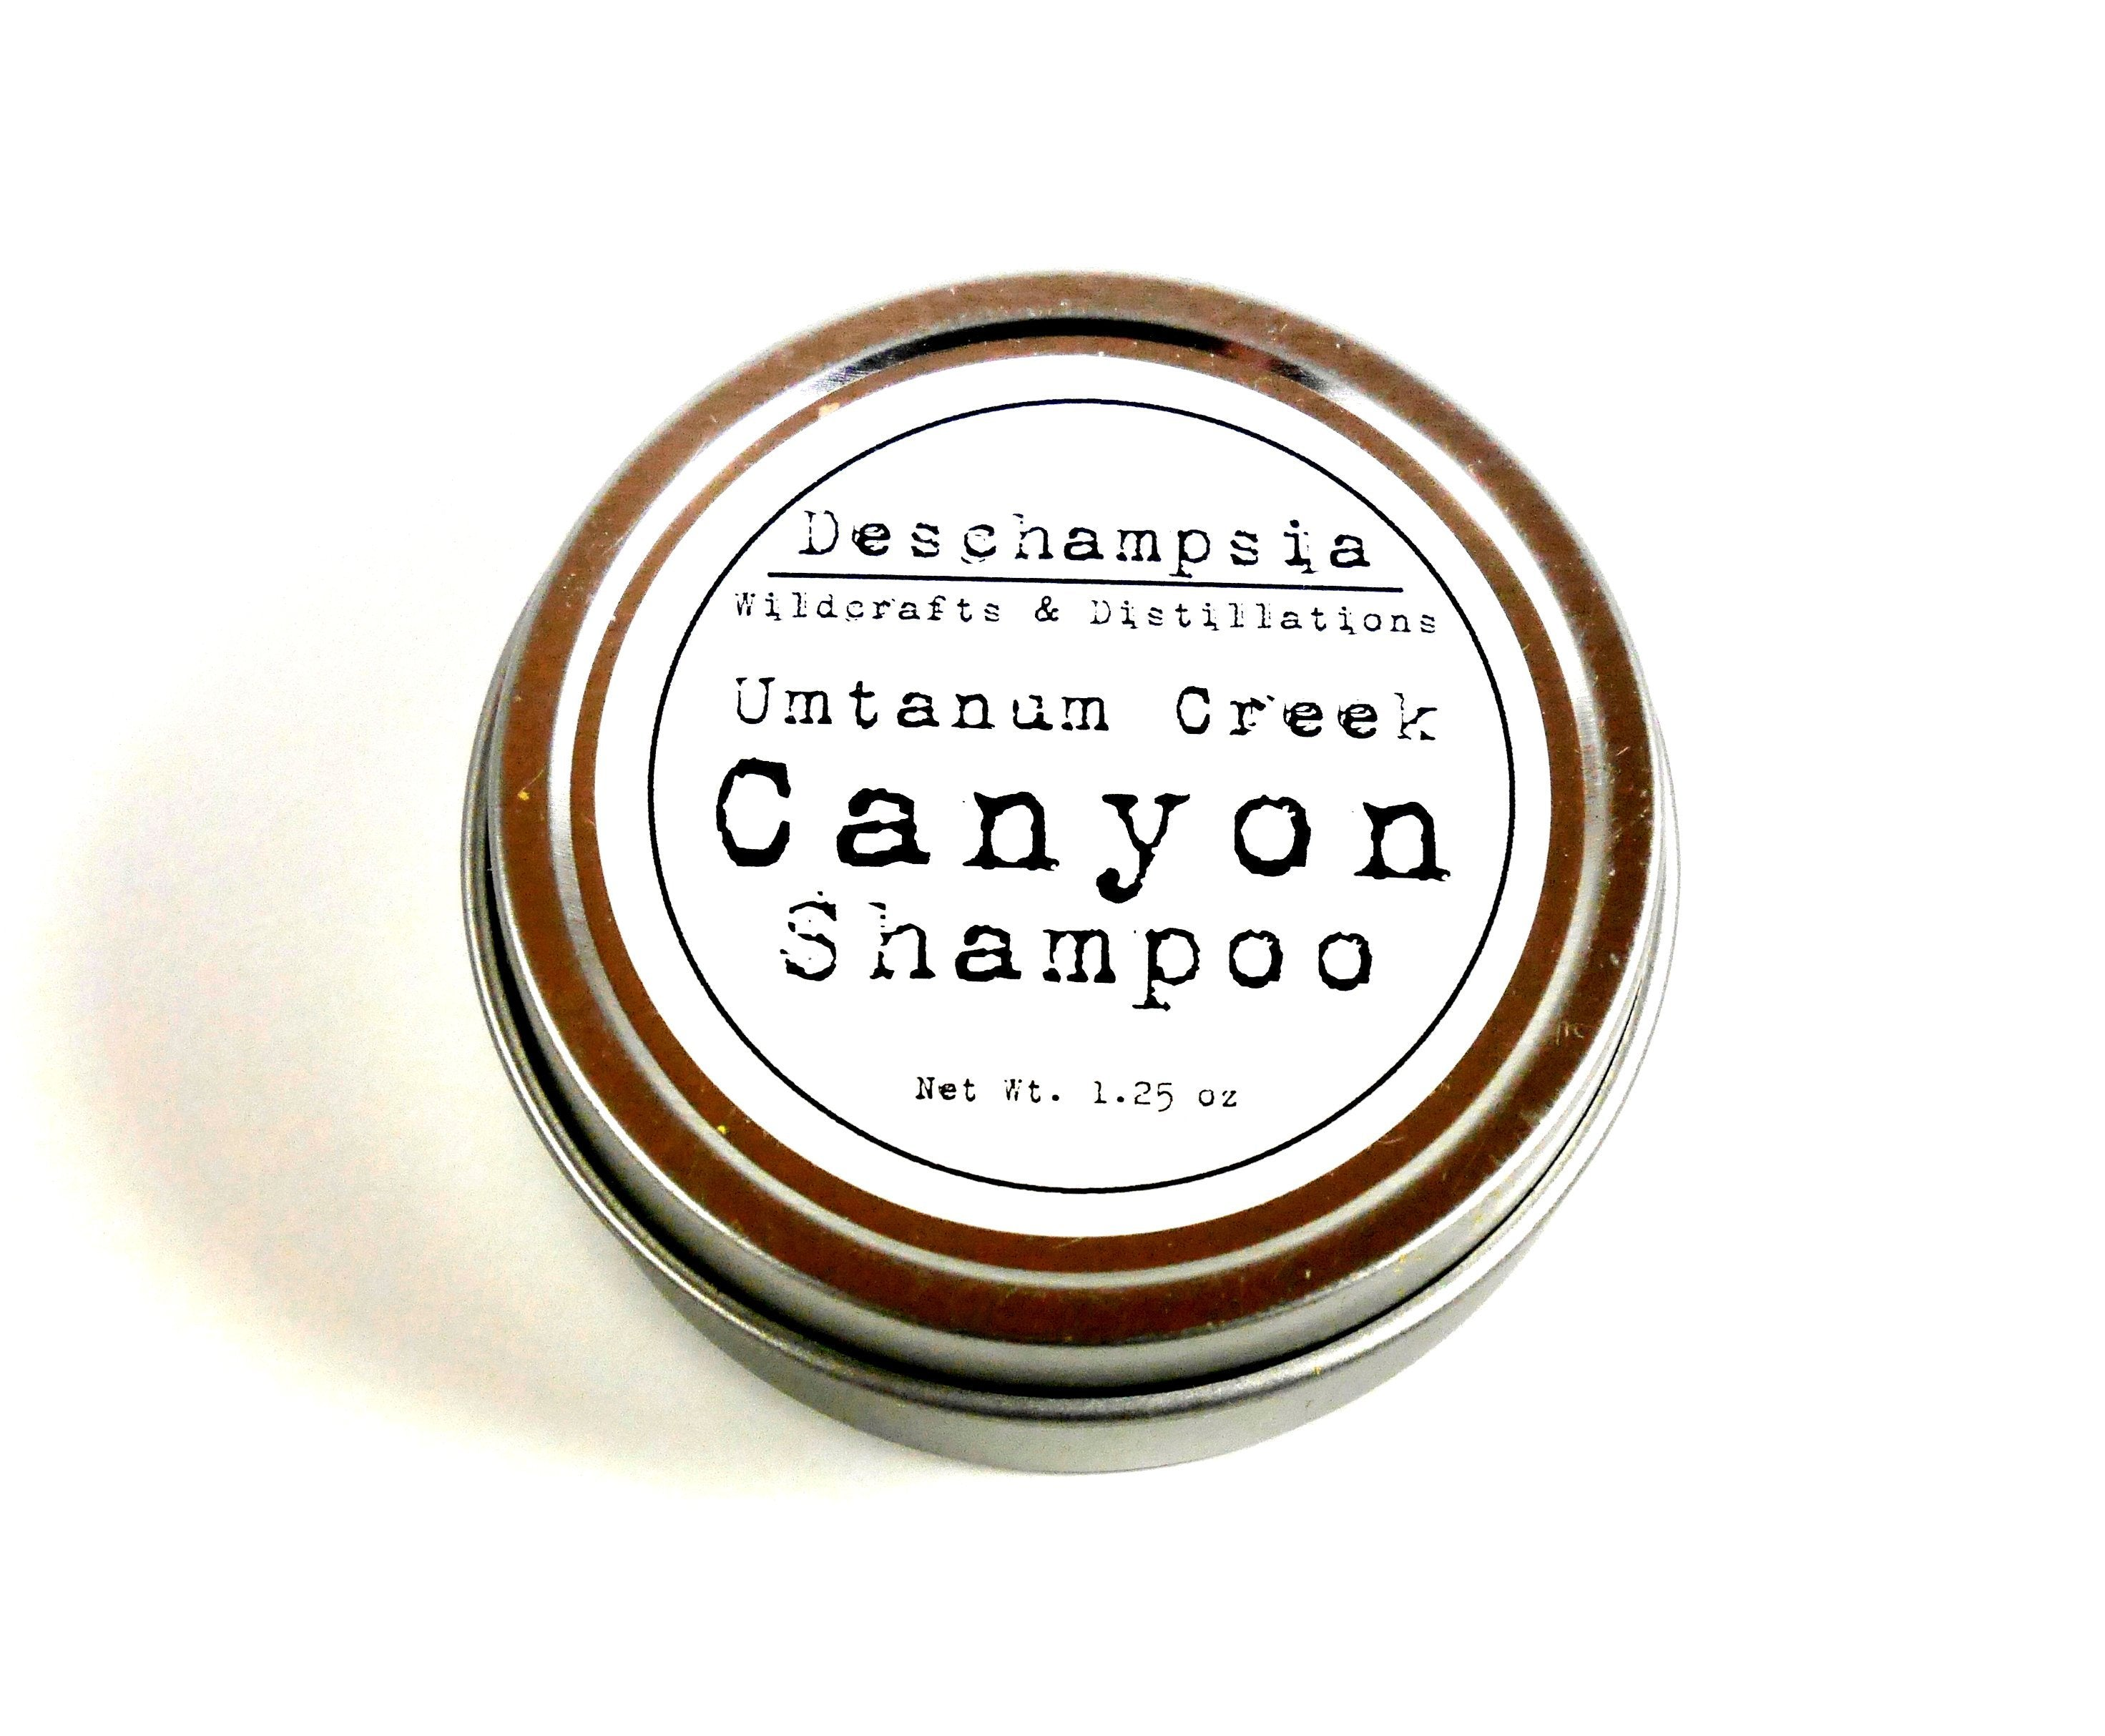 Umtanum Creek Canyon Shampoo